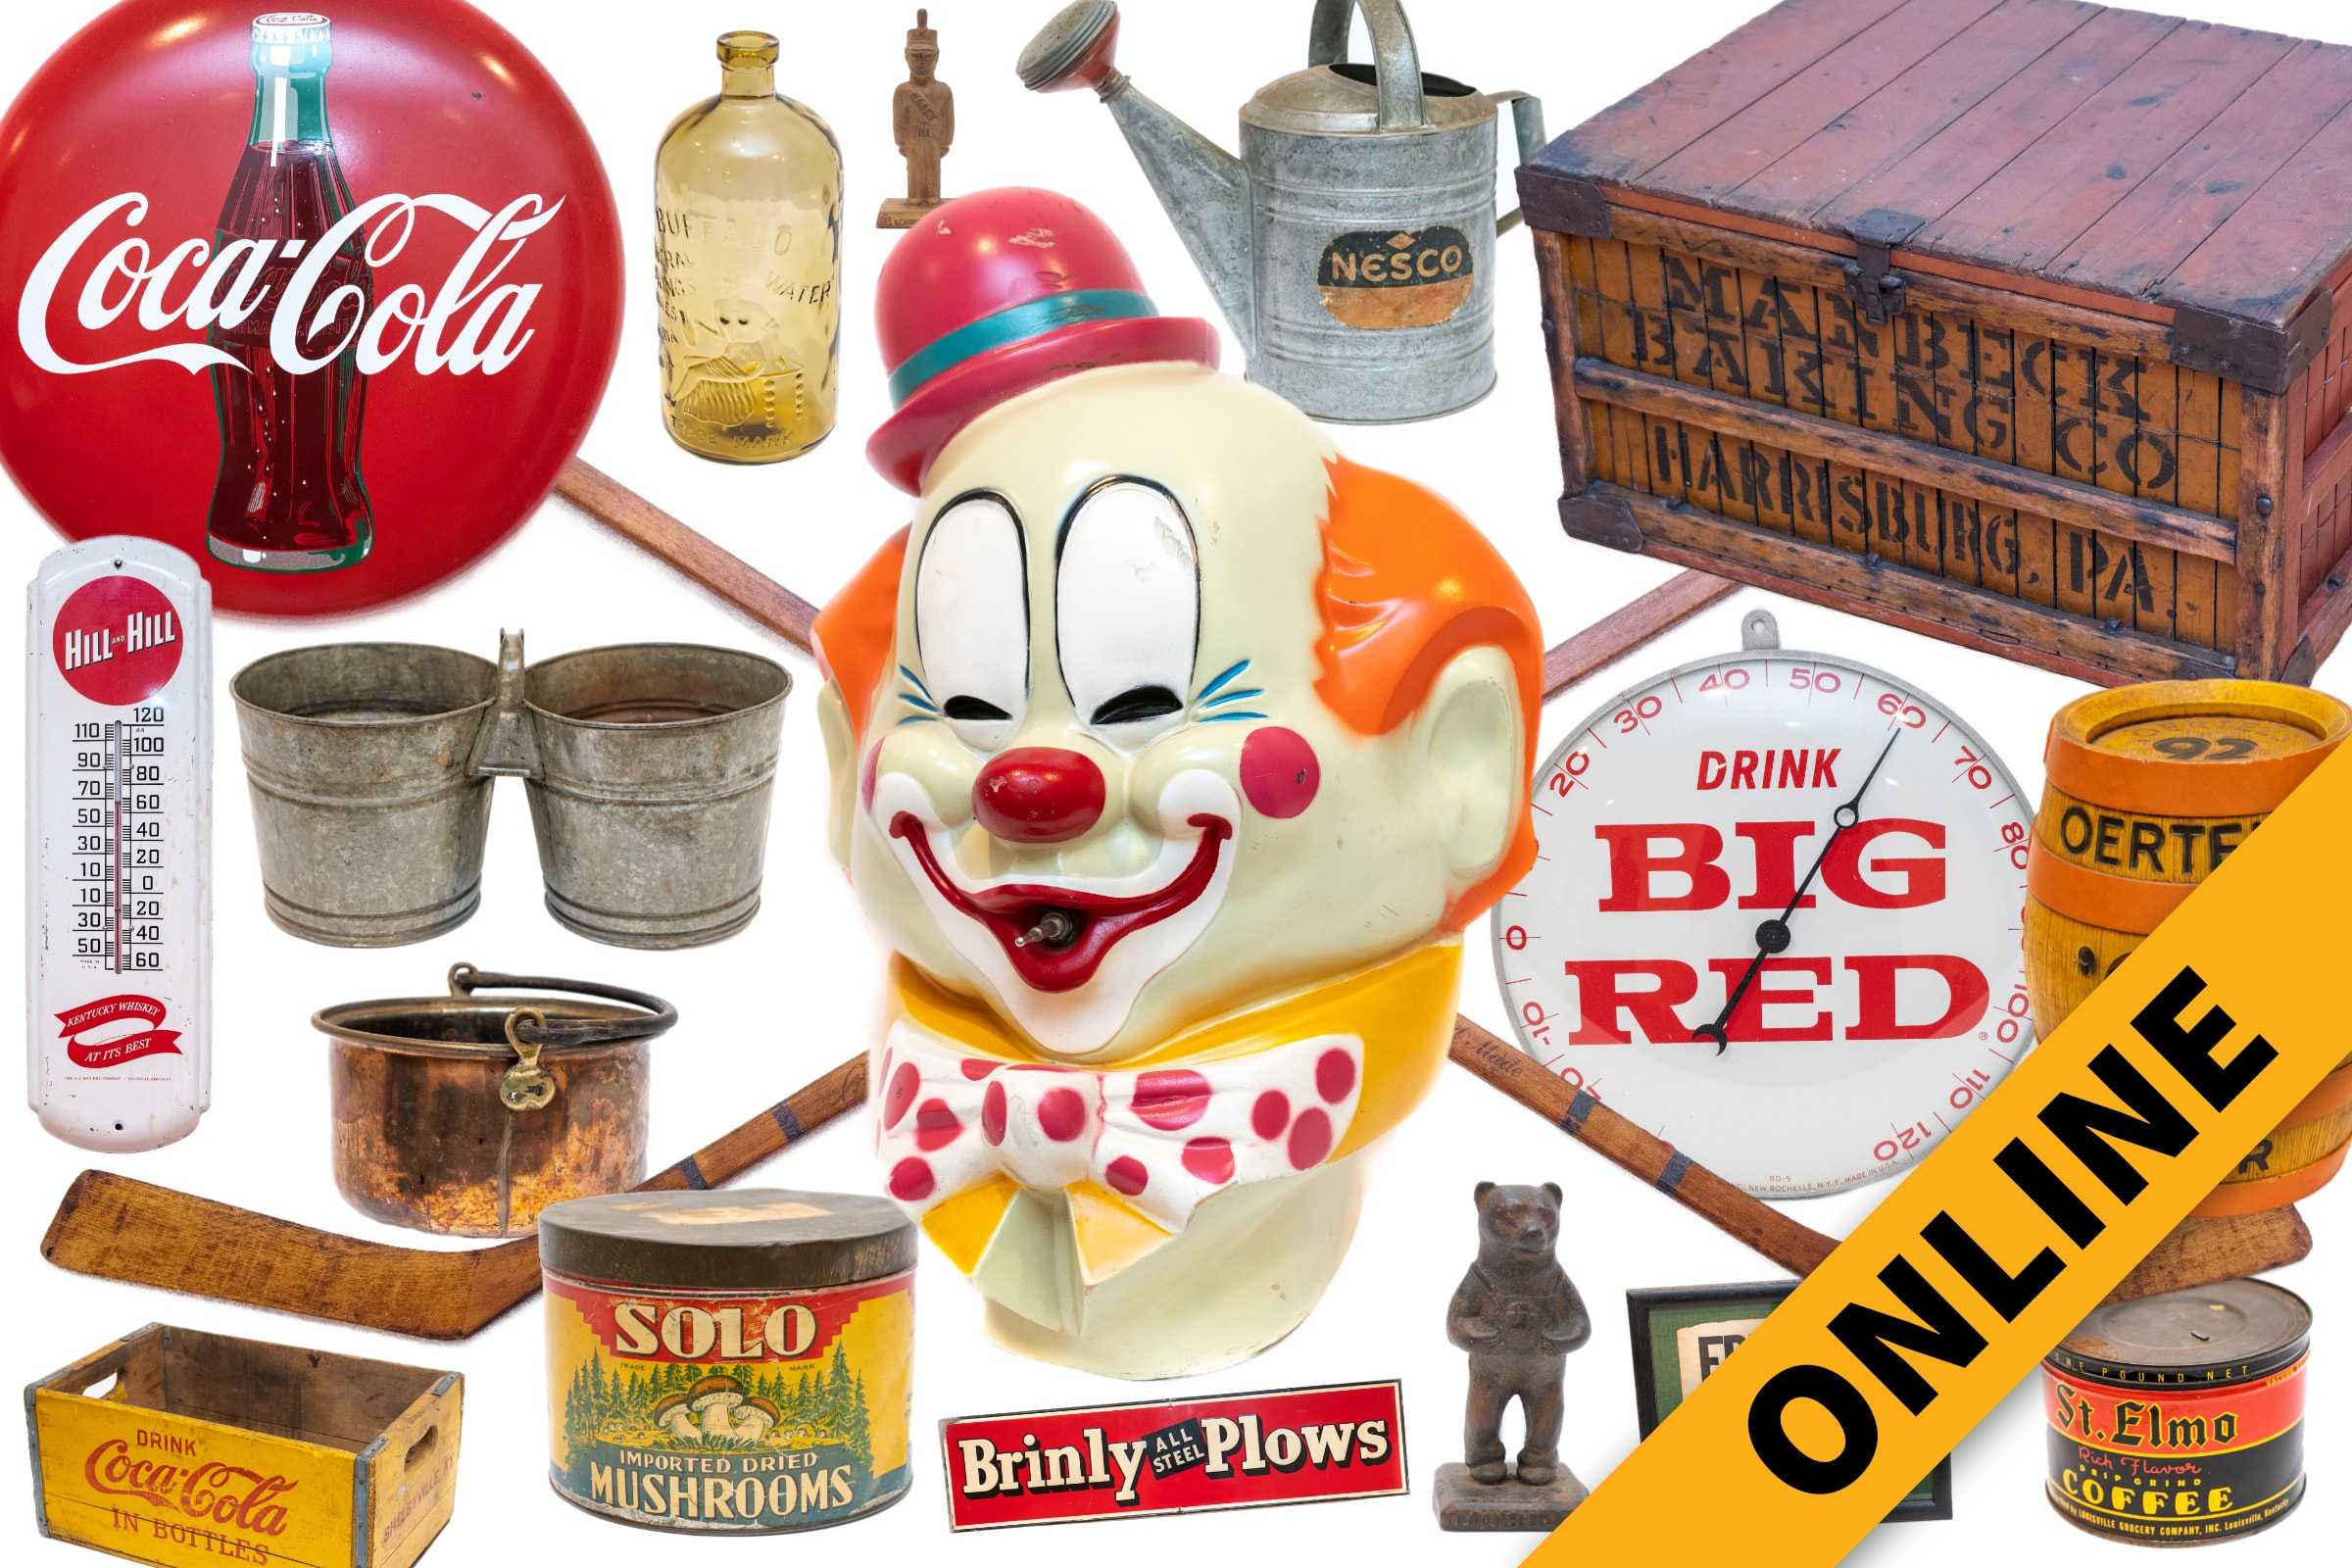 The Schmidt Estate Lifetime Collection Online Auction – Session 1